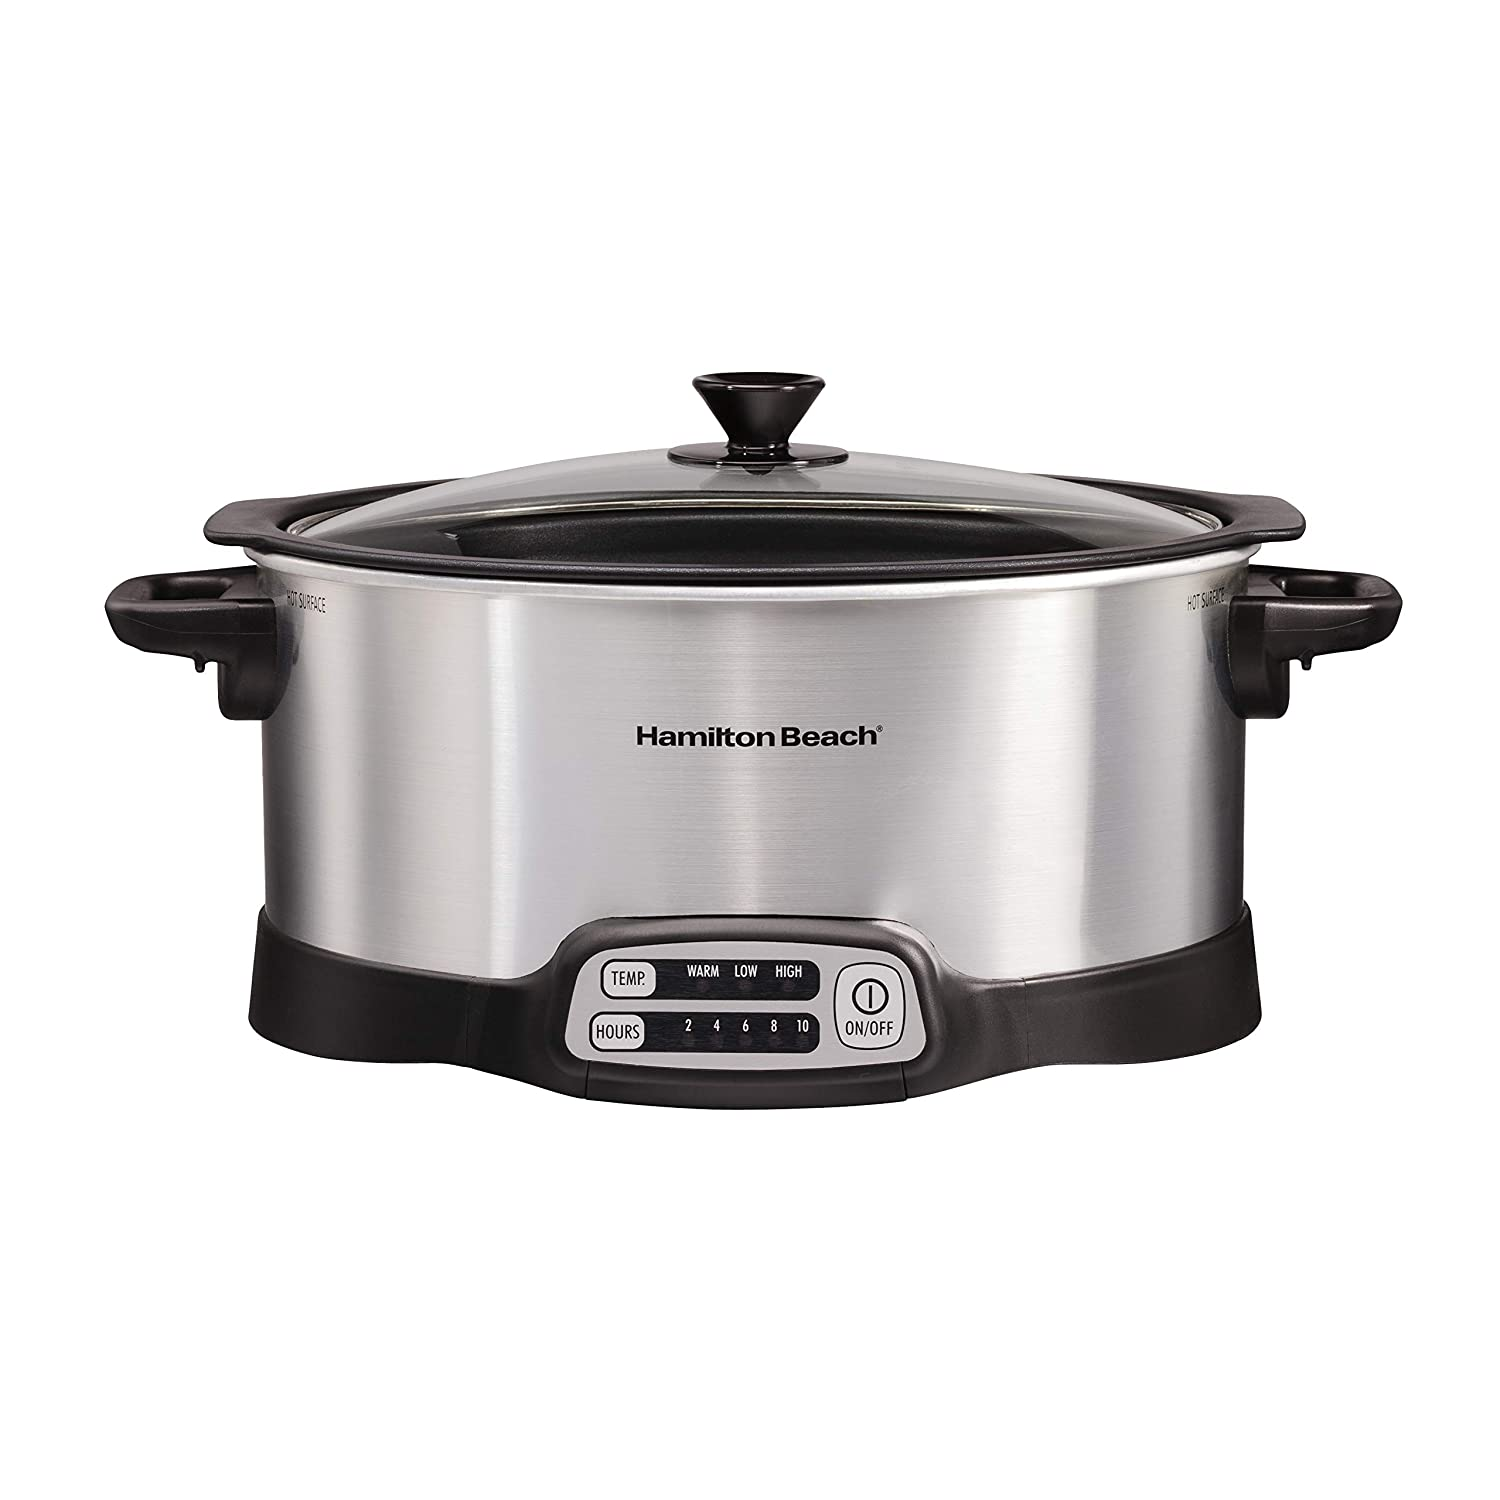 Hamilton Beach 33662 Stovetop Sear & Cook Slow Cooker 6 quart Capacity Stainless Steel